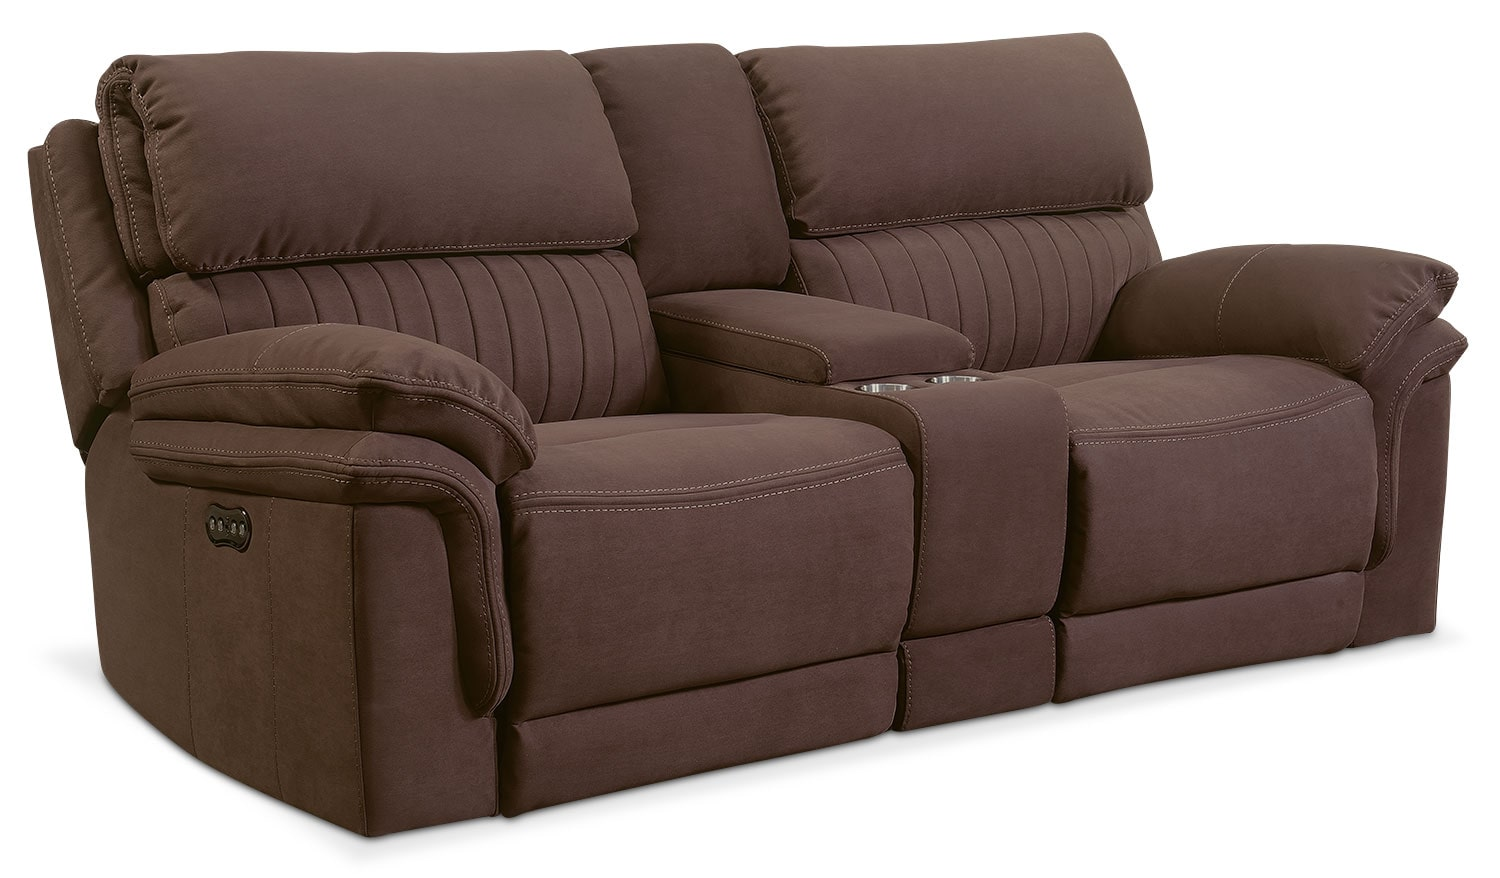 SofasCouchesLiving Room SeatingValue City Furniture